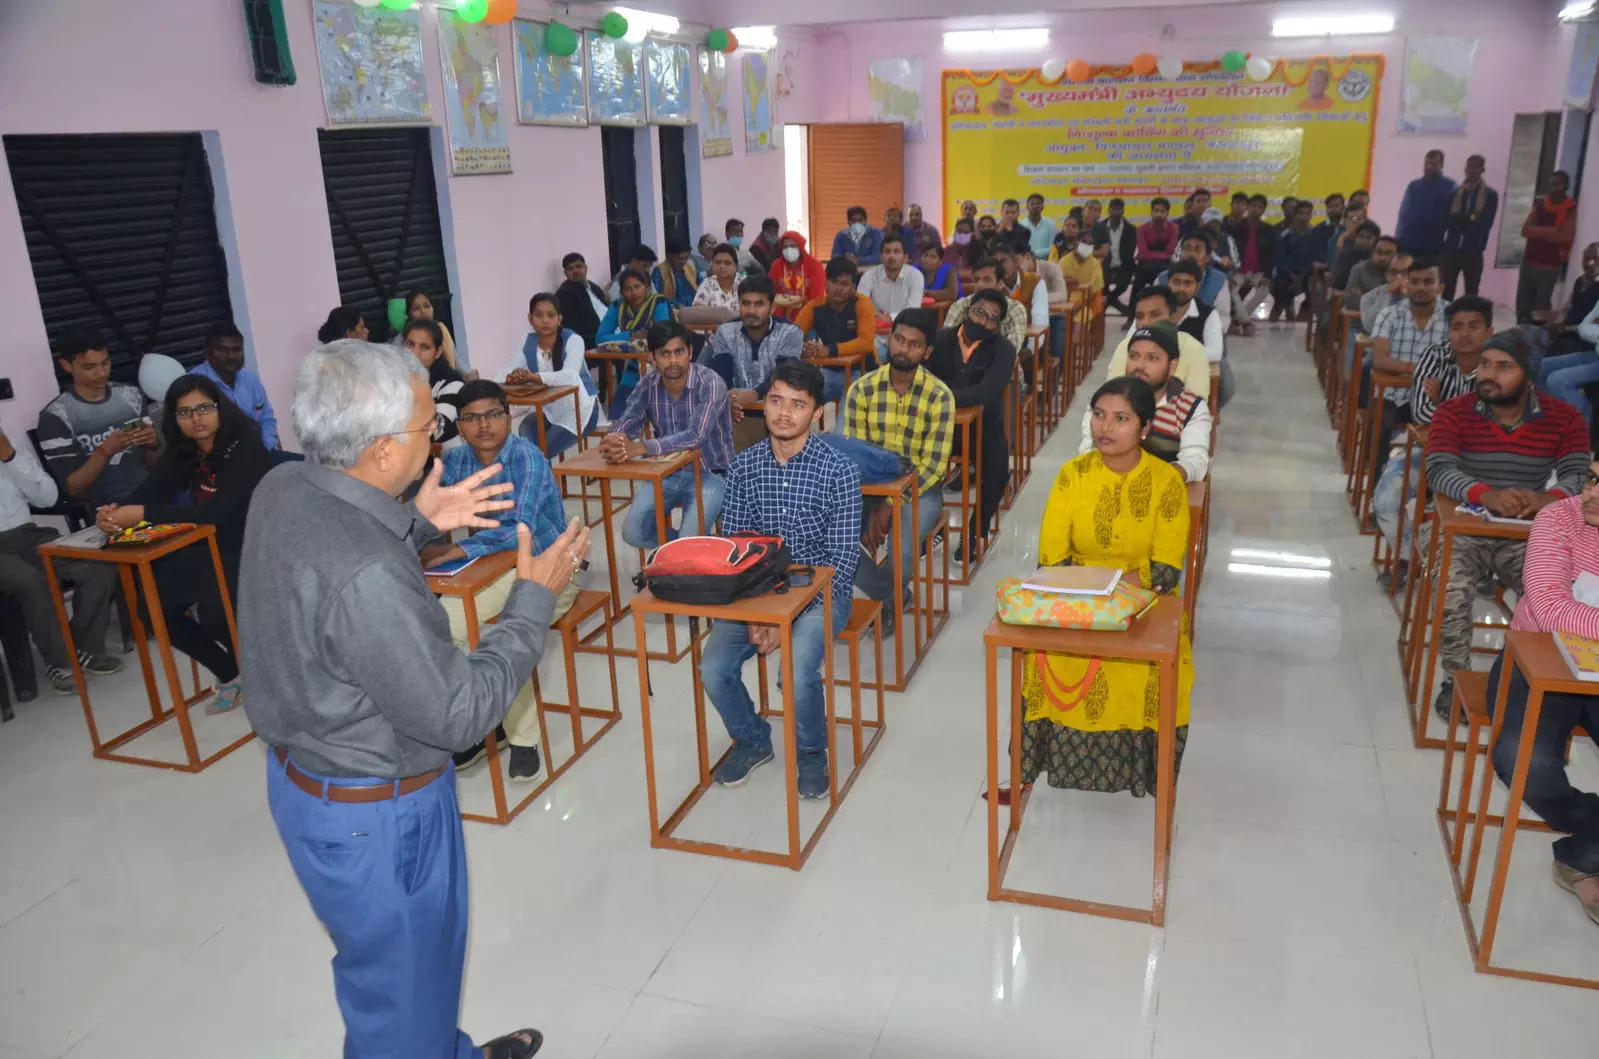 KIIT to conduct separate entrance exams for students affected by cyclone